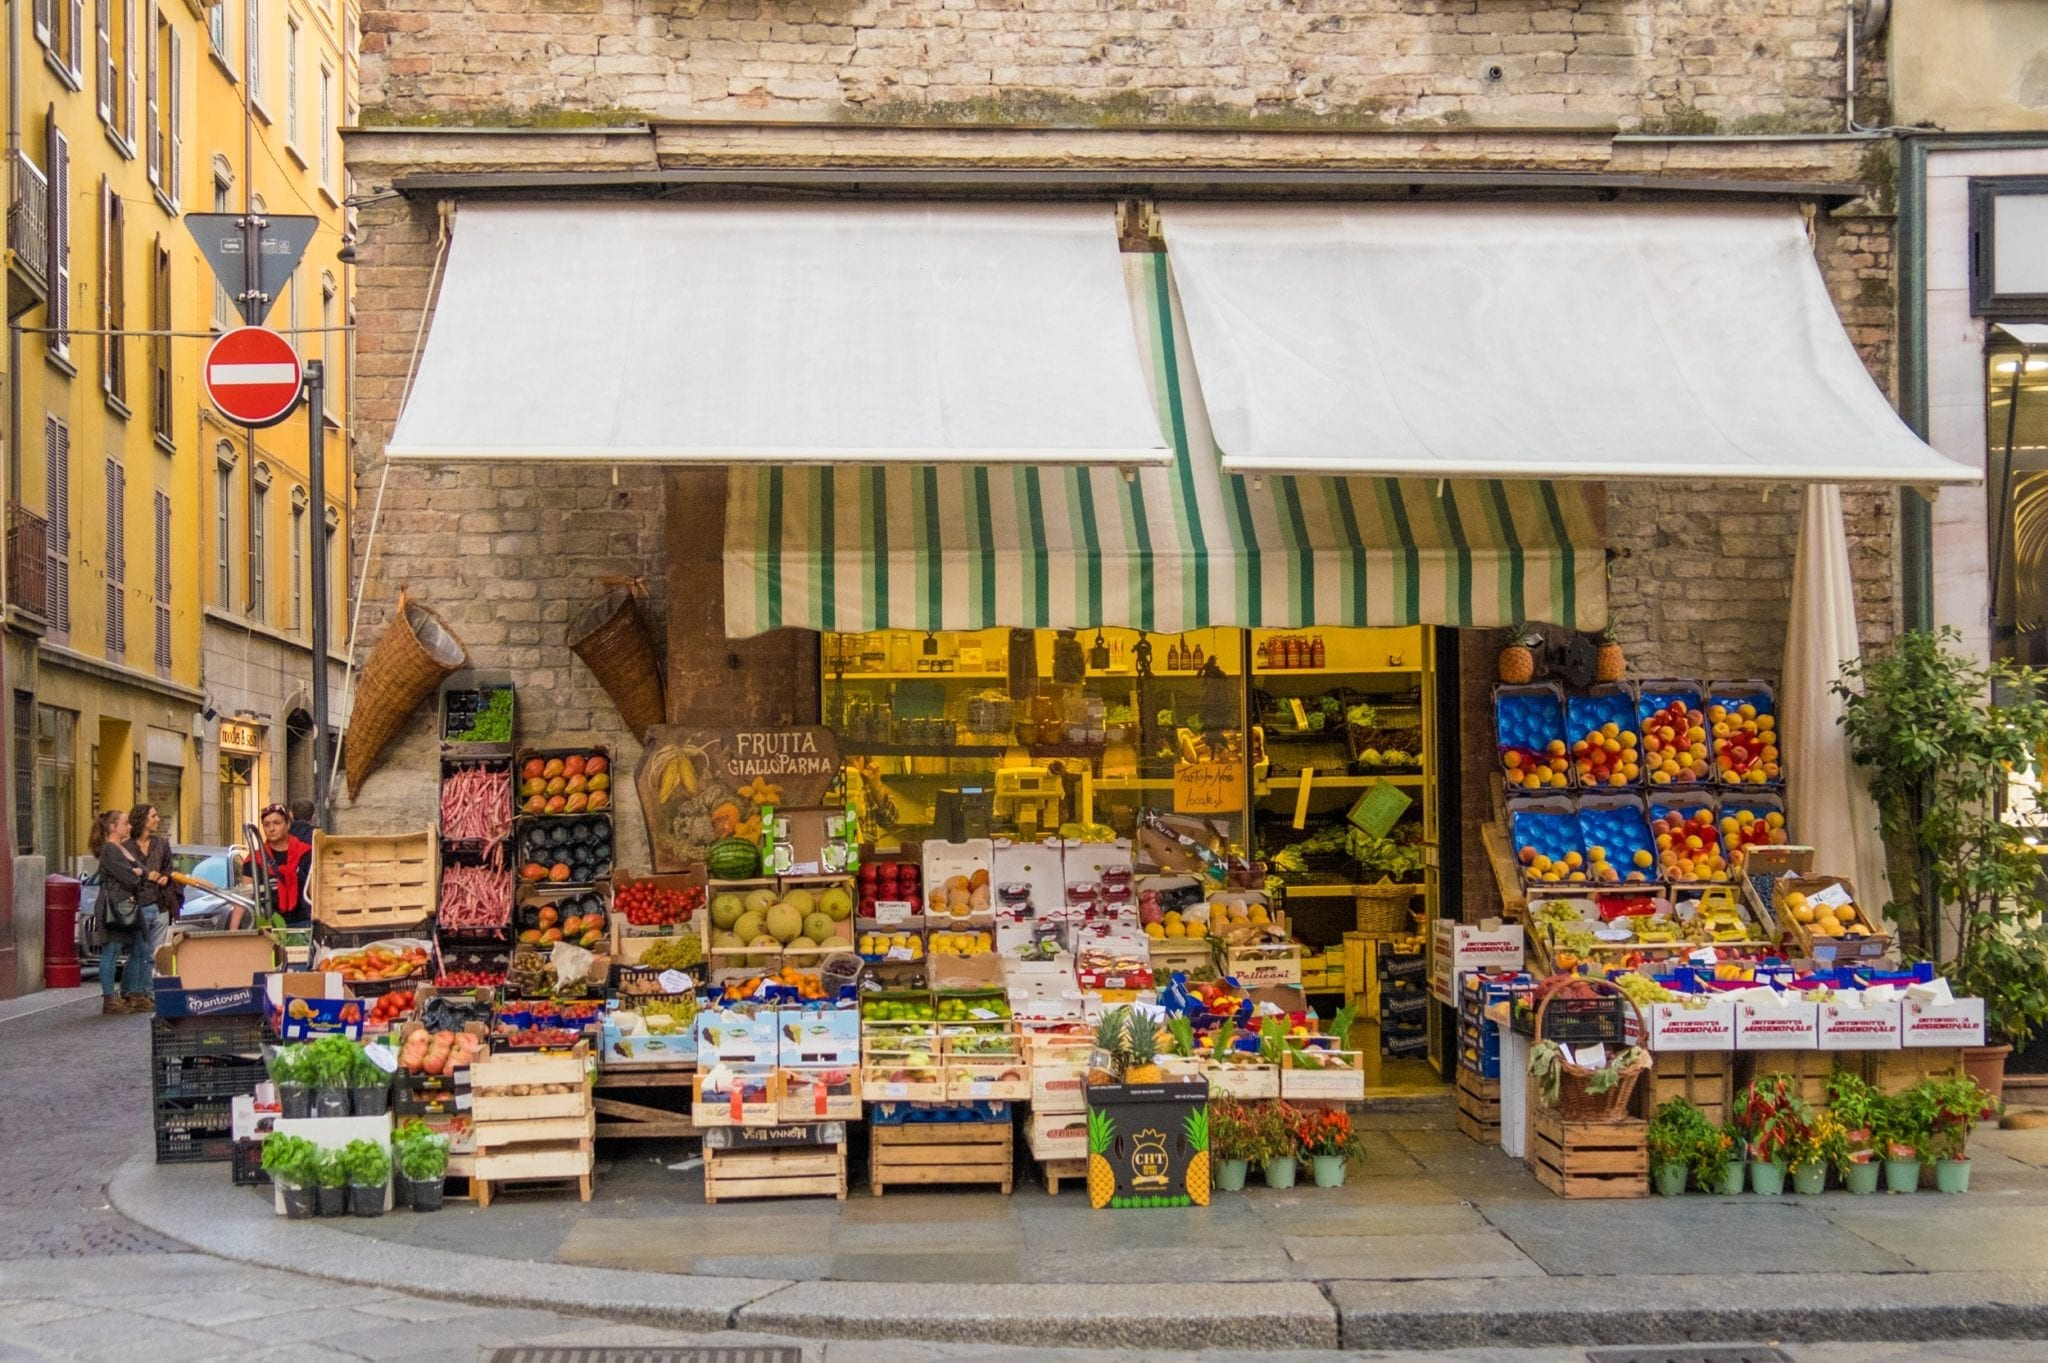 A fruit stand brimming with piles of fruits and vegetables in Parma, Italy.